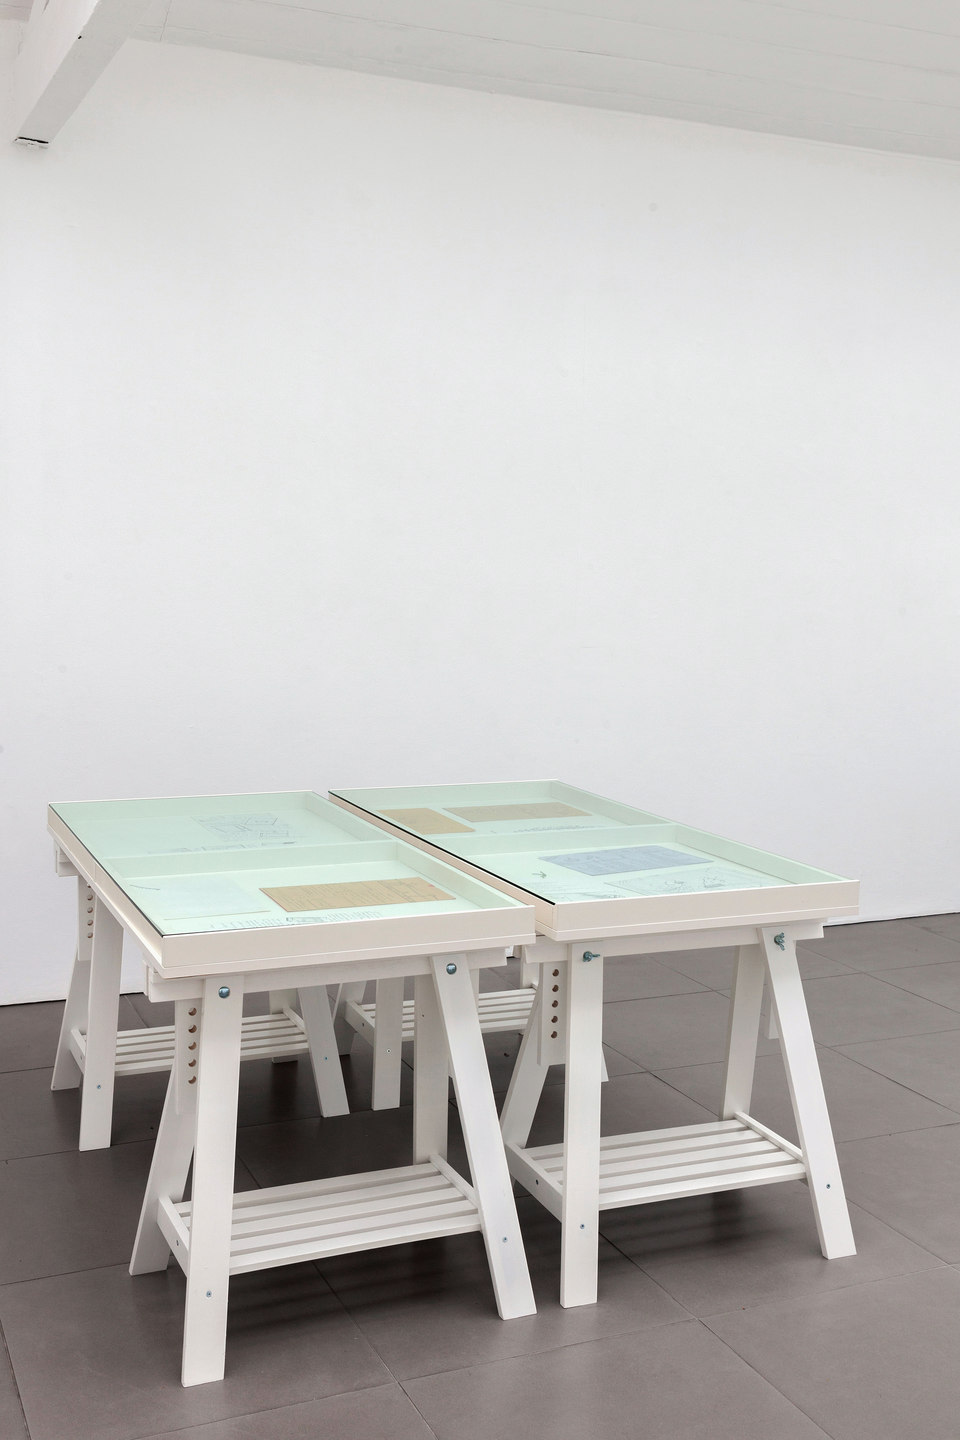 Barbara T Smith, The Poetry Sets, 1965-66,, Installation View, 2015, Cell Project Space